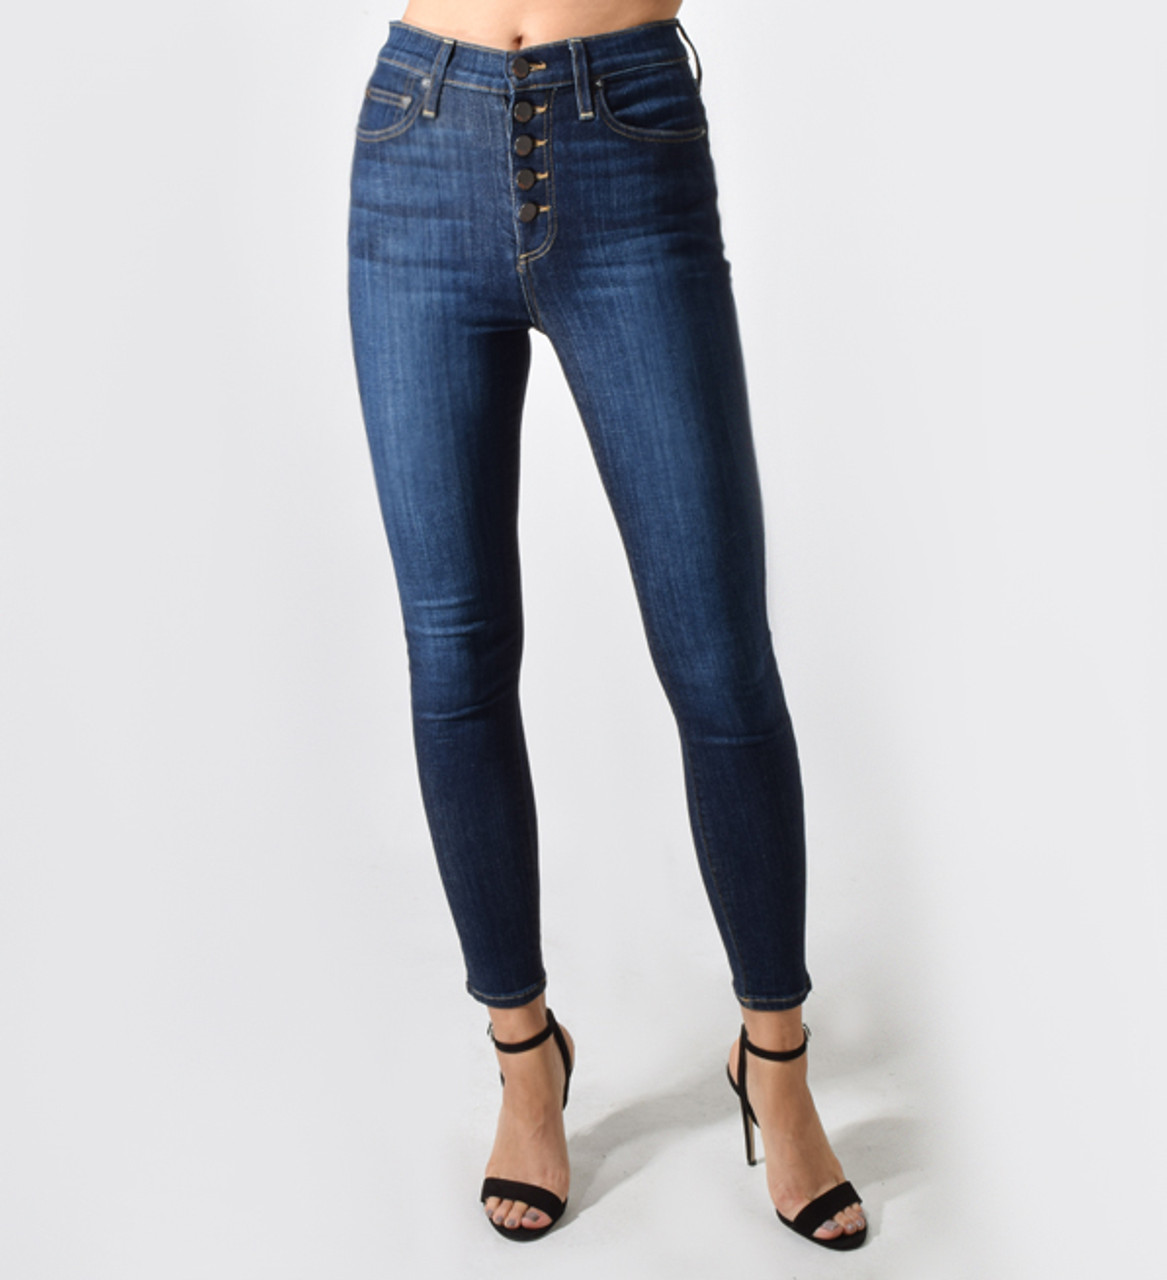 8c450cd1d92 X1https://cdn7.bigcommerce.com/s-3wu6n/products/ ·  X1https://cdn7.bigcommerce.com/s-3wu6n/products/ · Alice + Olivia Good High  Rise Exposed Button Jean ...